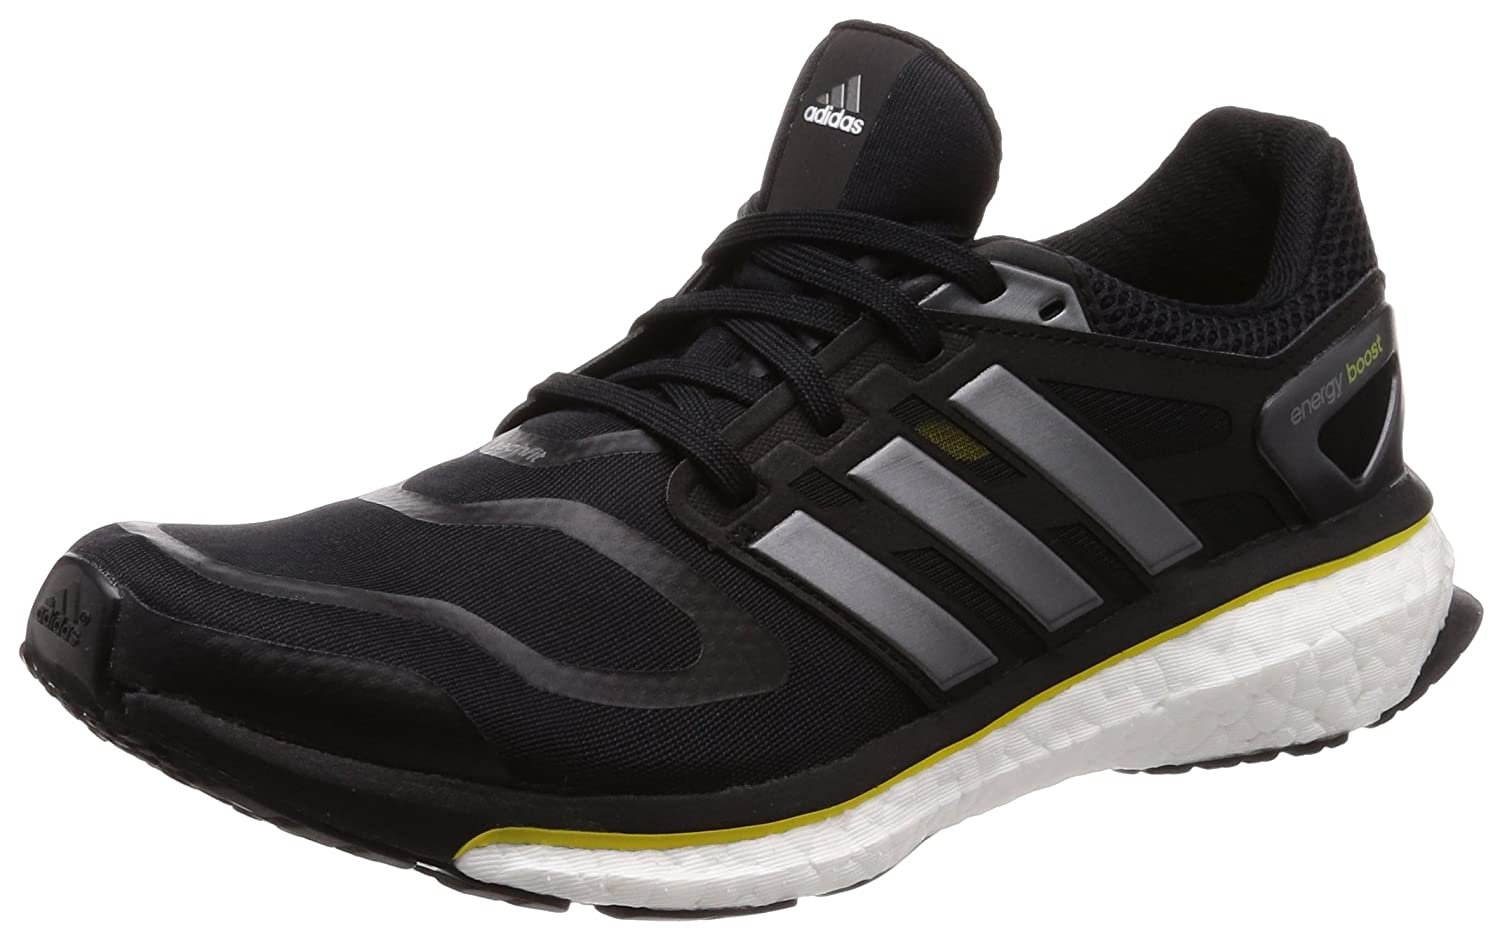 adidas Launches Its Revolutionary Energy BOOST Running Shoes